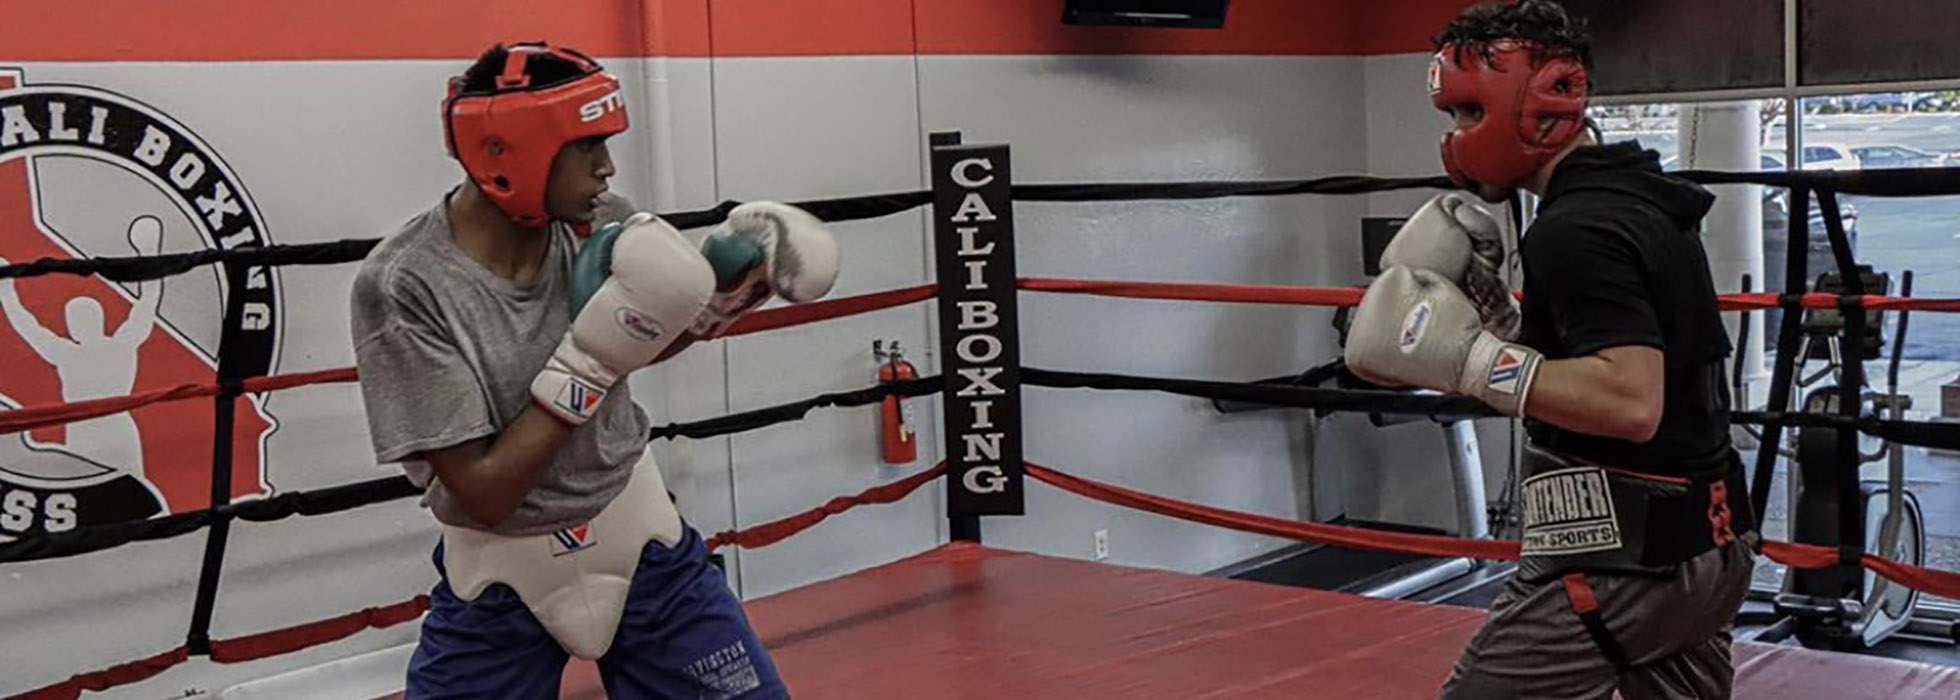 Adult Boxing 101 in San Jose CA, Adult Boxing 101 near Eastside San Jose CA, Adult Boxing 101 near Downtown San Jose CA, Adult Boxing 101 near Milpitas CA